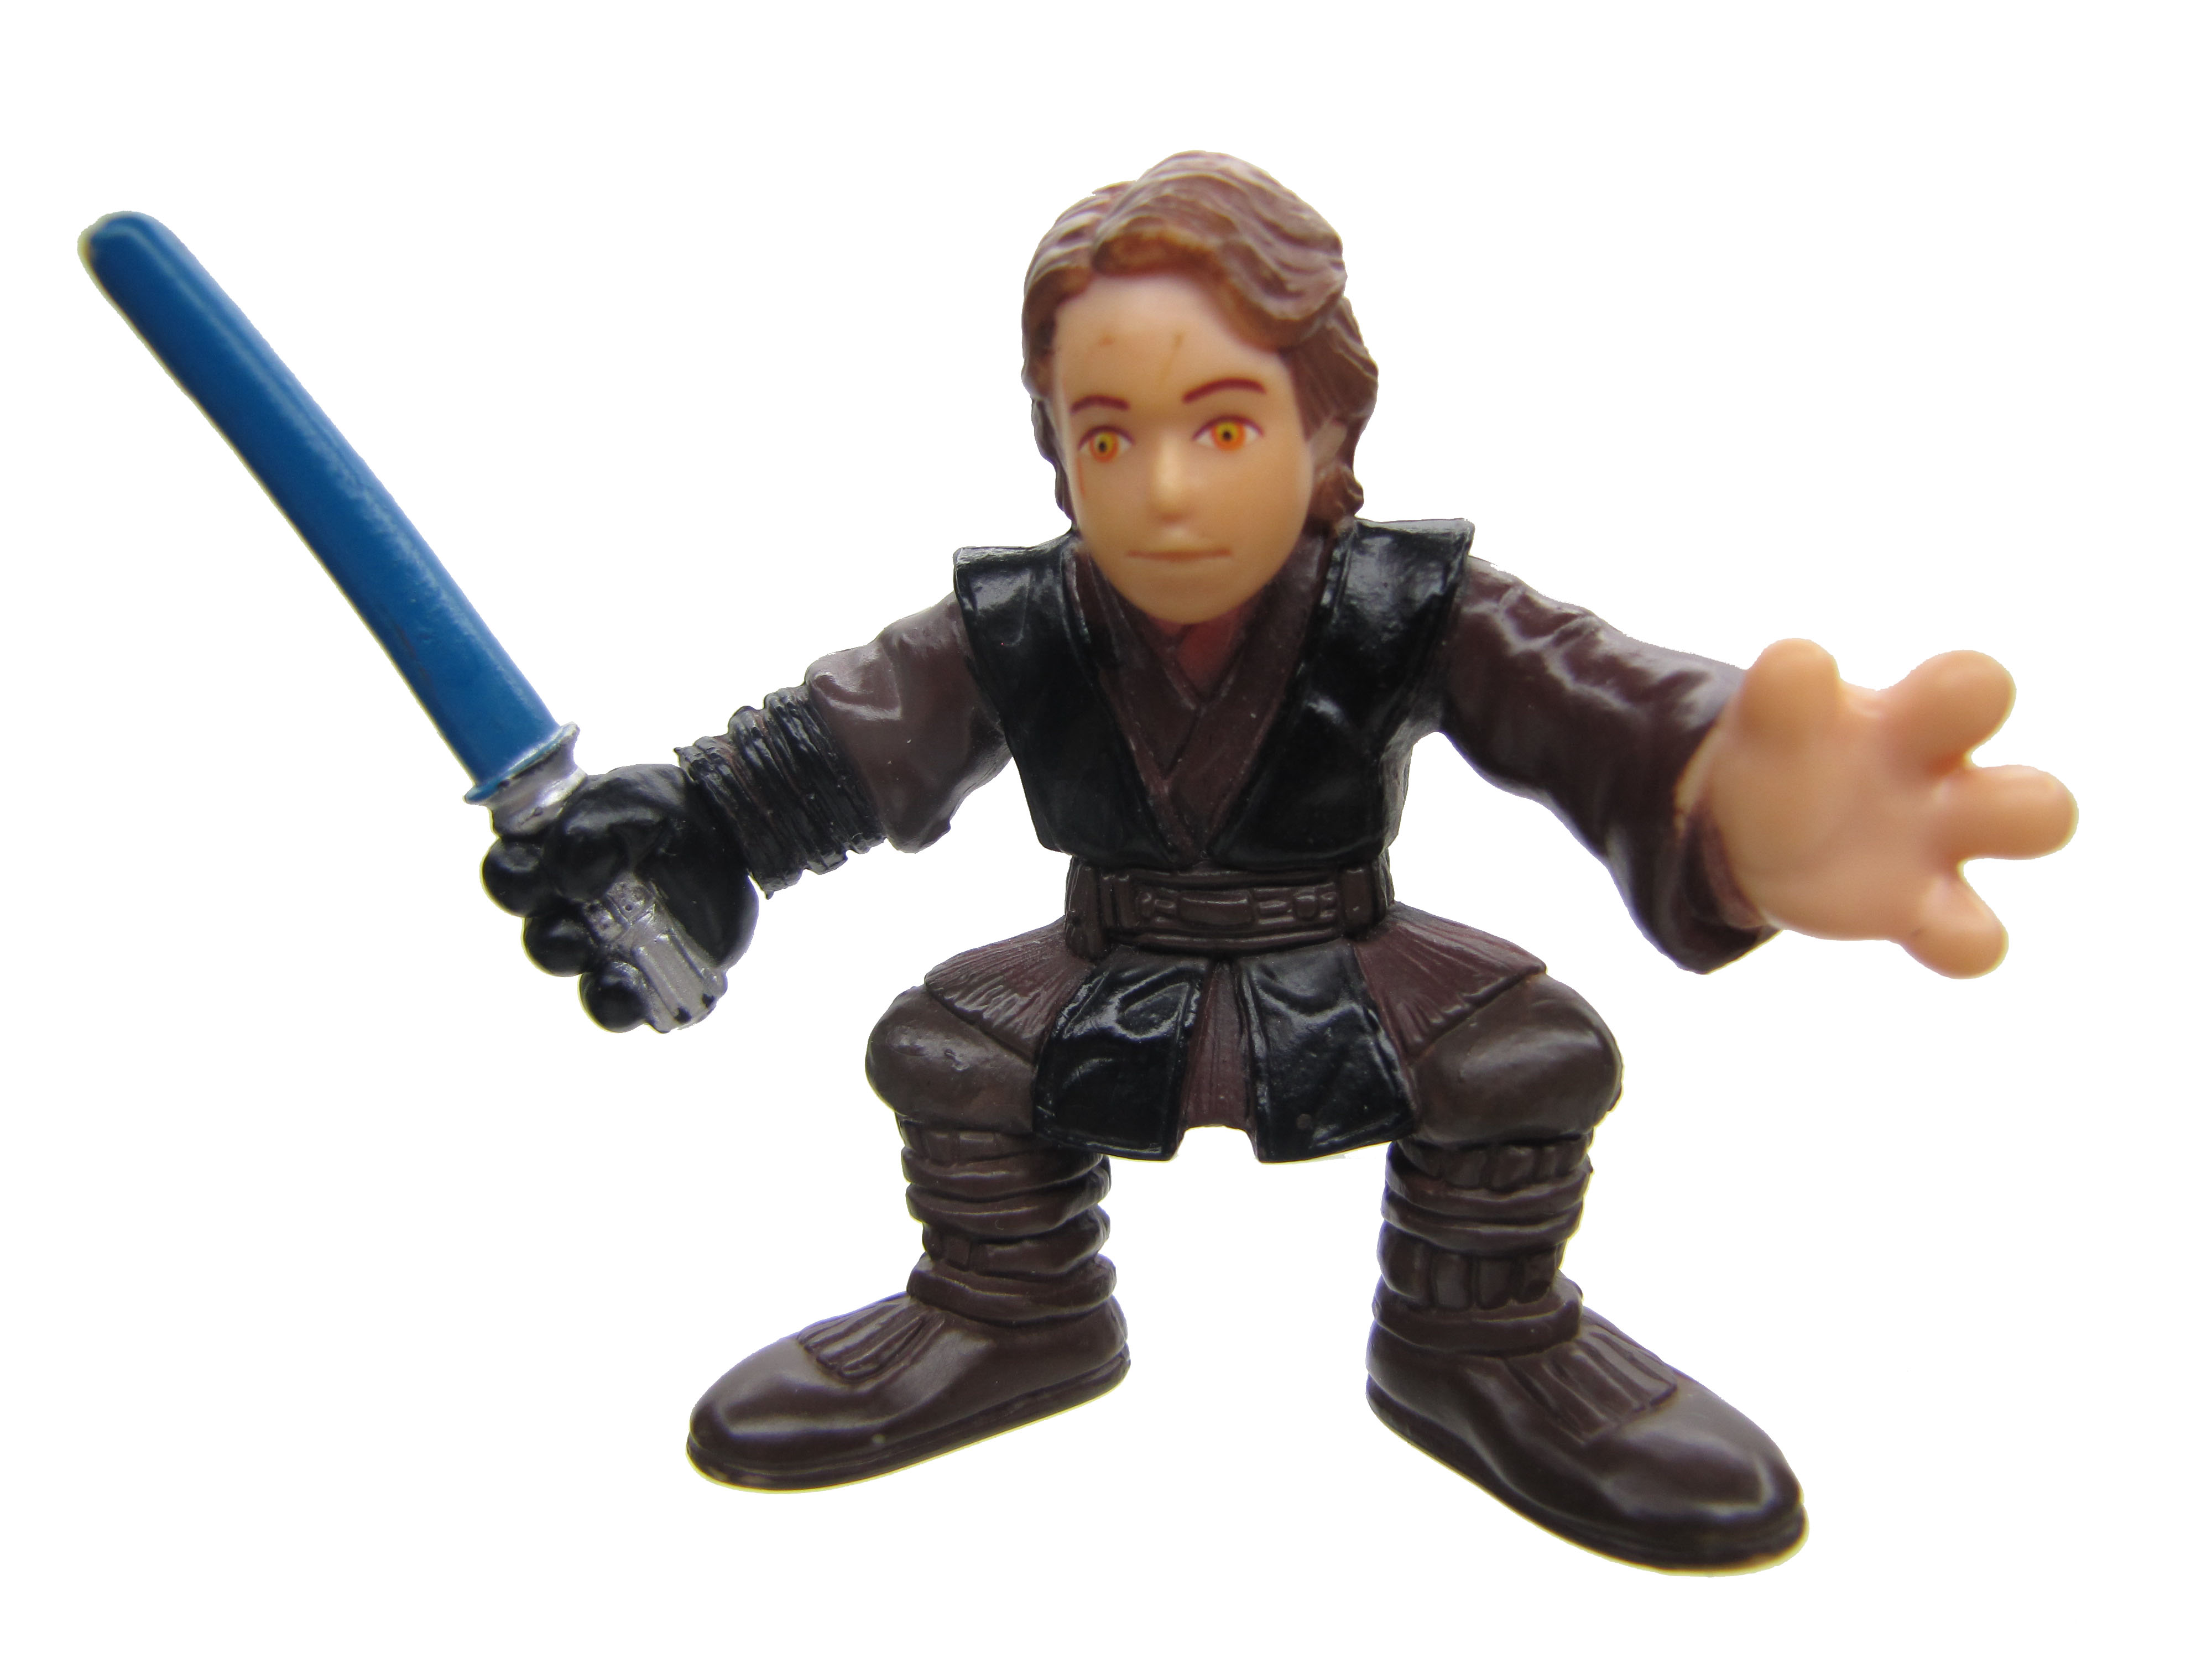 Star Wars Galactic Heroes DARK SIDE ANAKIN SKYWALKER Complete